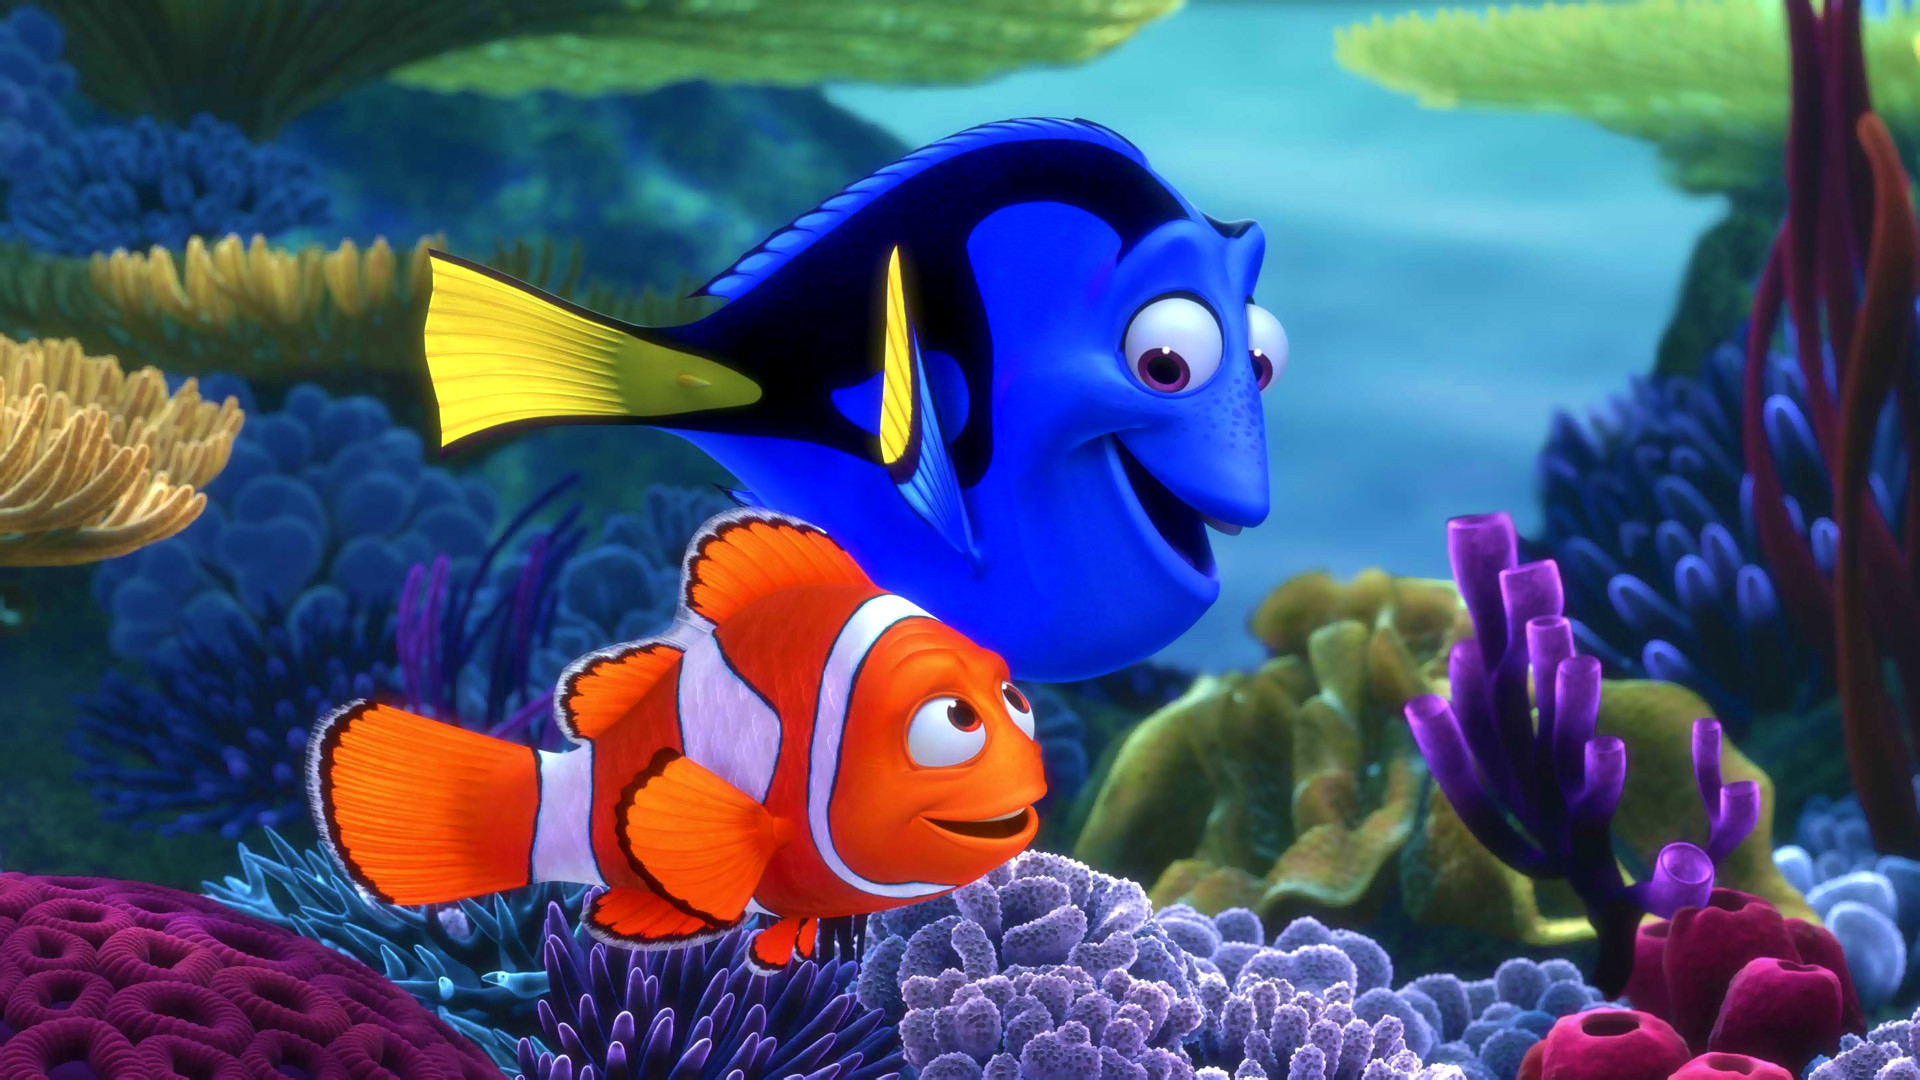 3d Finding Nemo Fish Under Sea